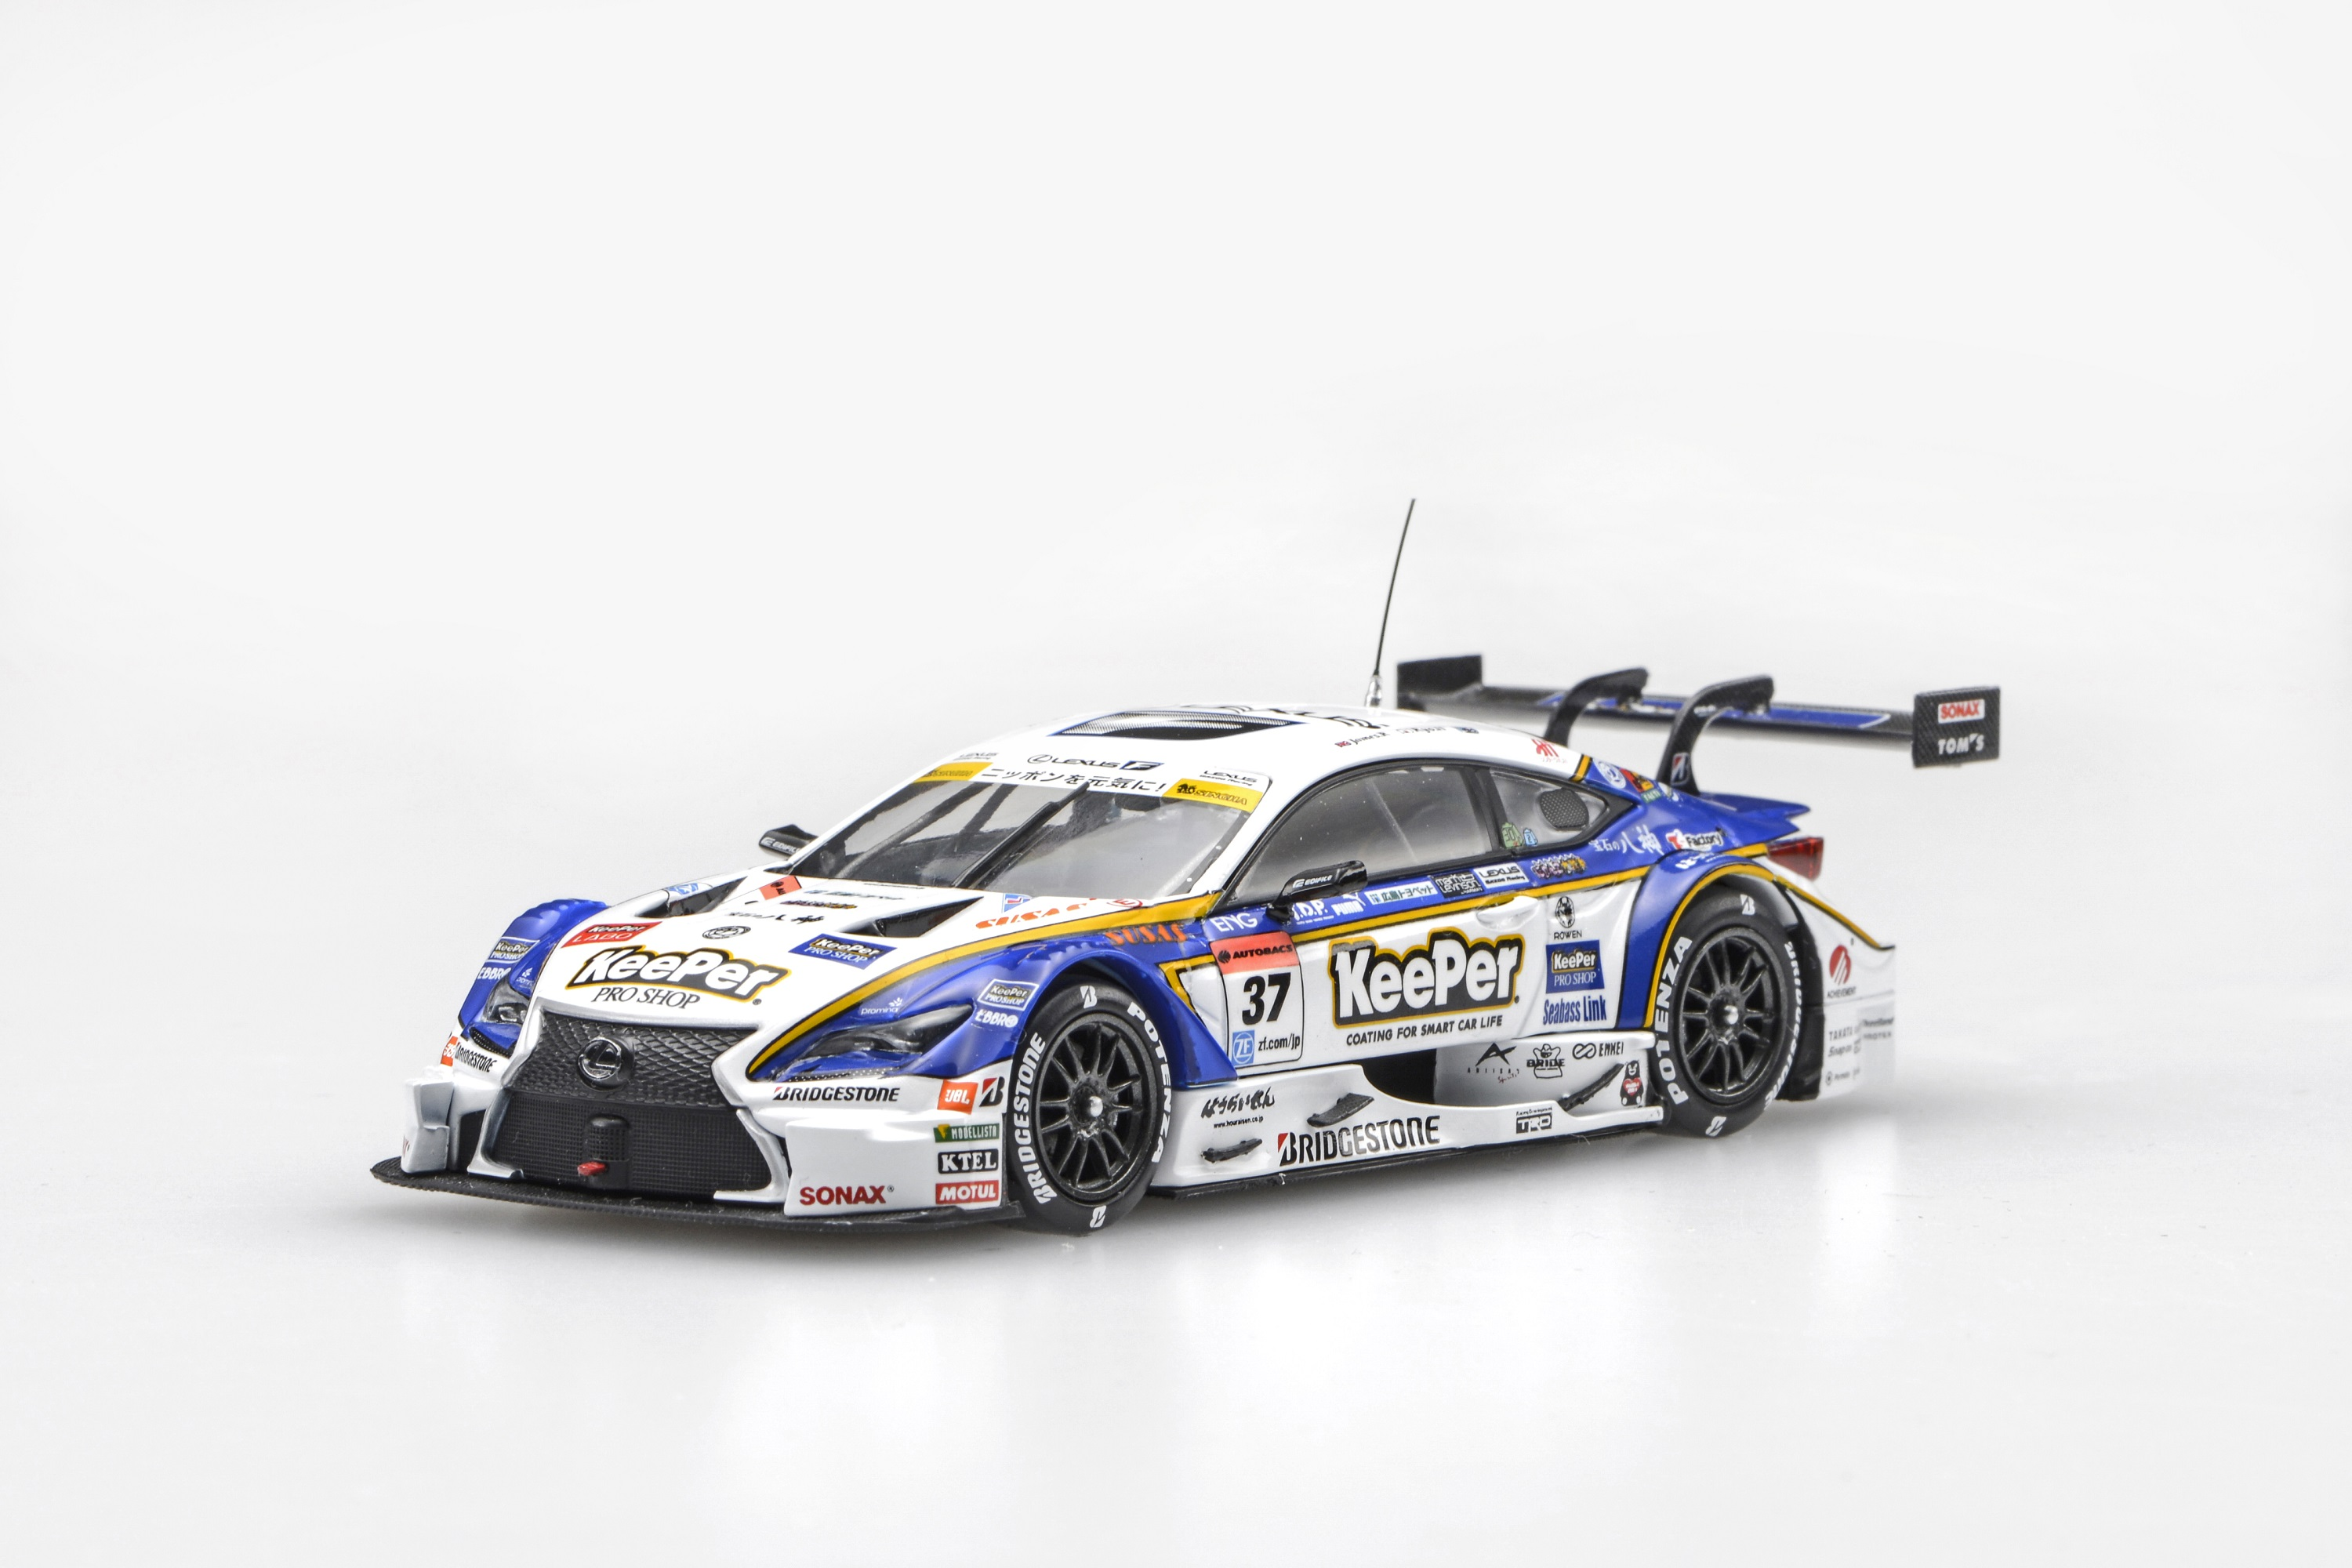 【45455】KeePer TOM'S RC F SUPER GT GT500 2016 Rd.2 Fuji No.37